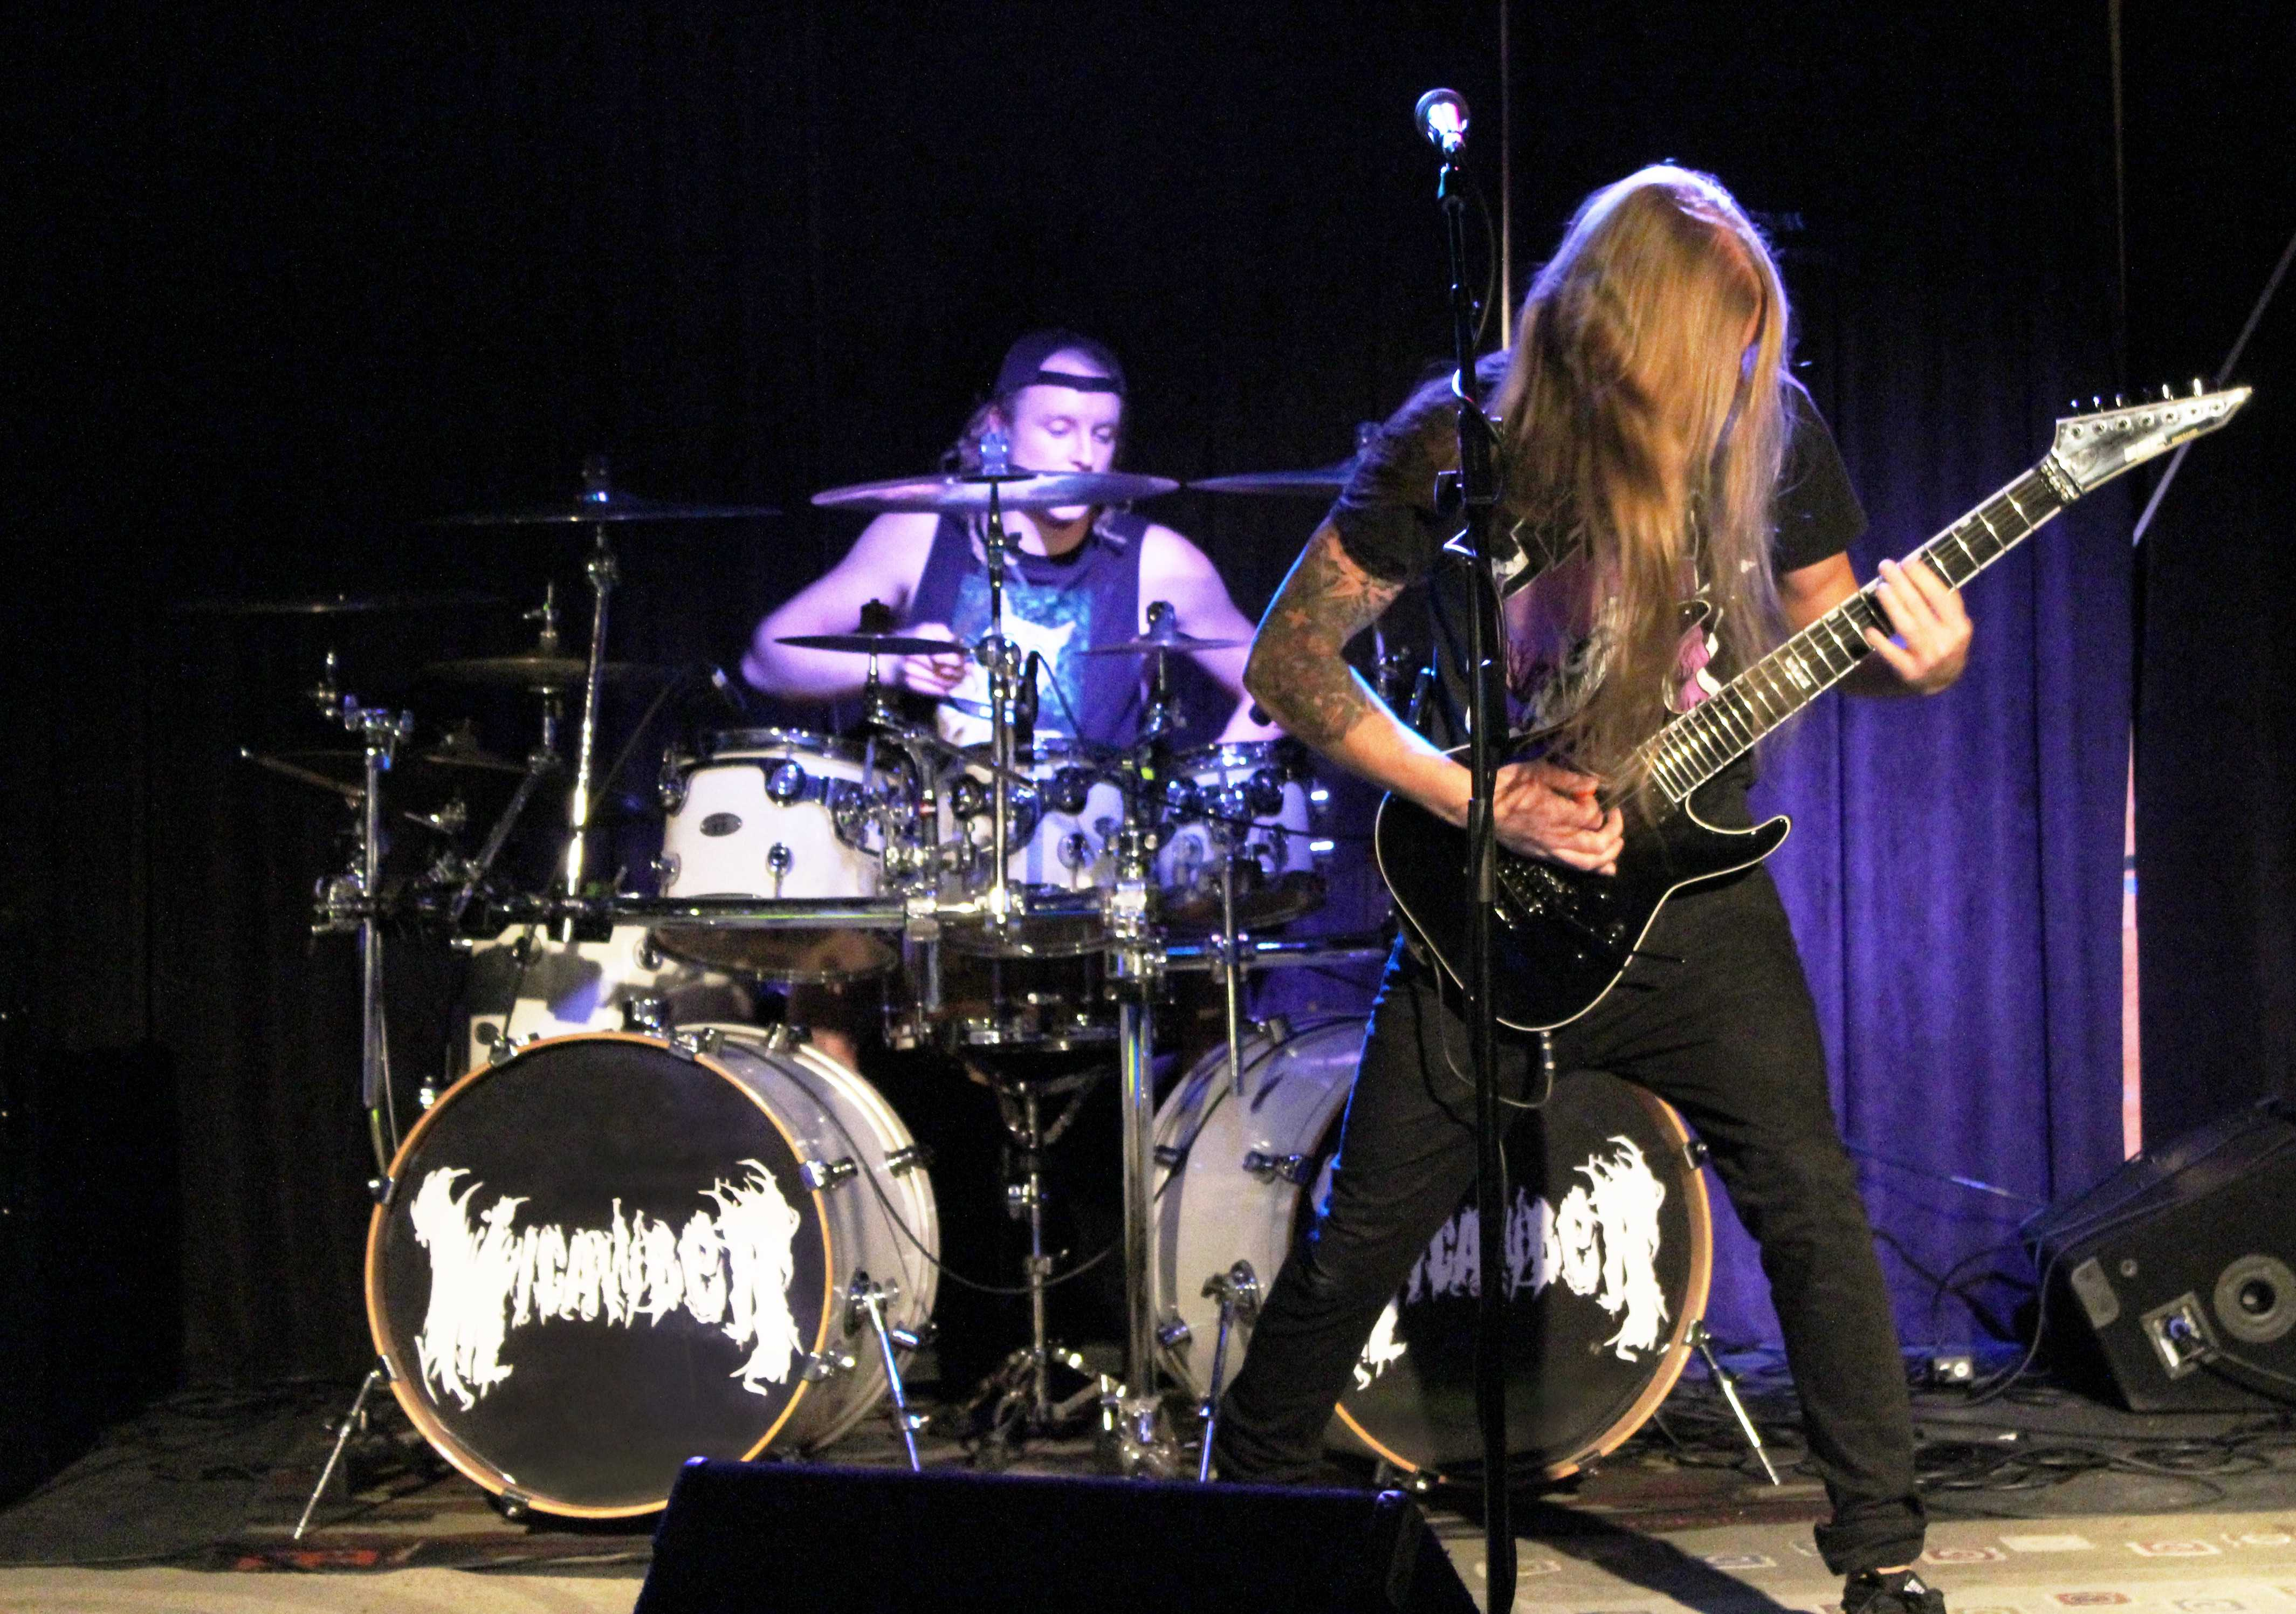 Local Live Music Night hosts local metal bands